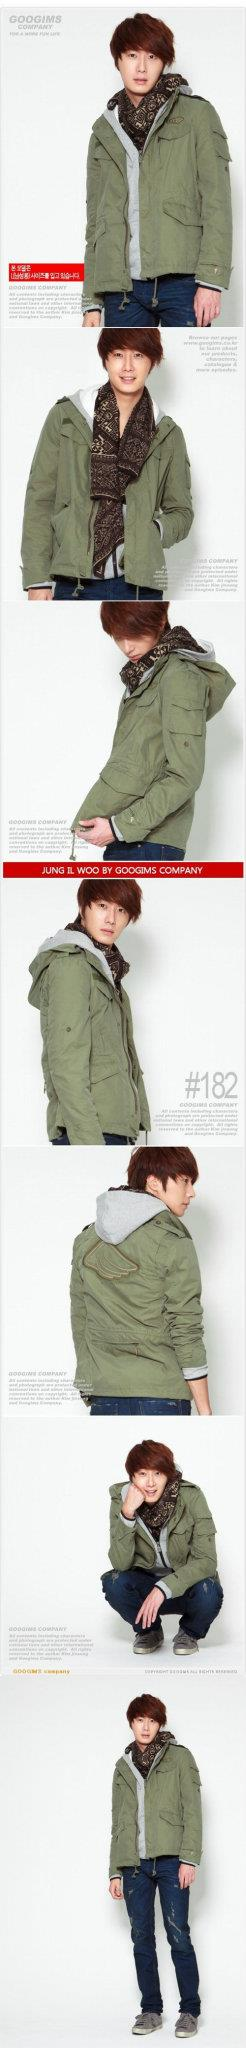 2011 10 Jung II-woo for Googims. Part 3 00004